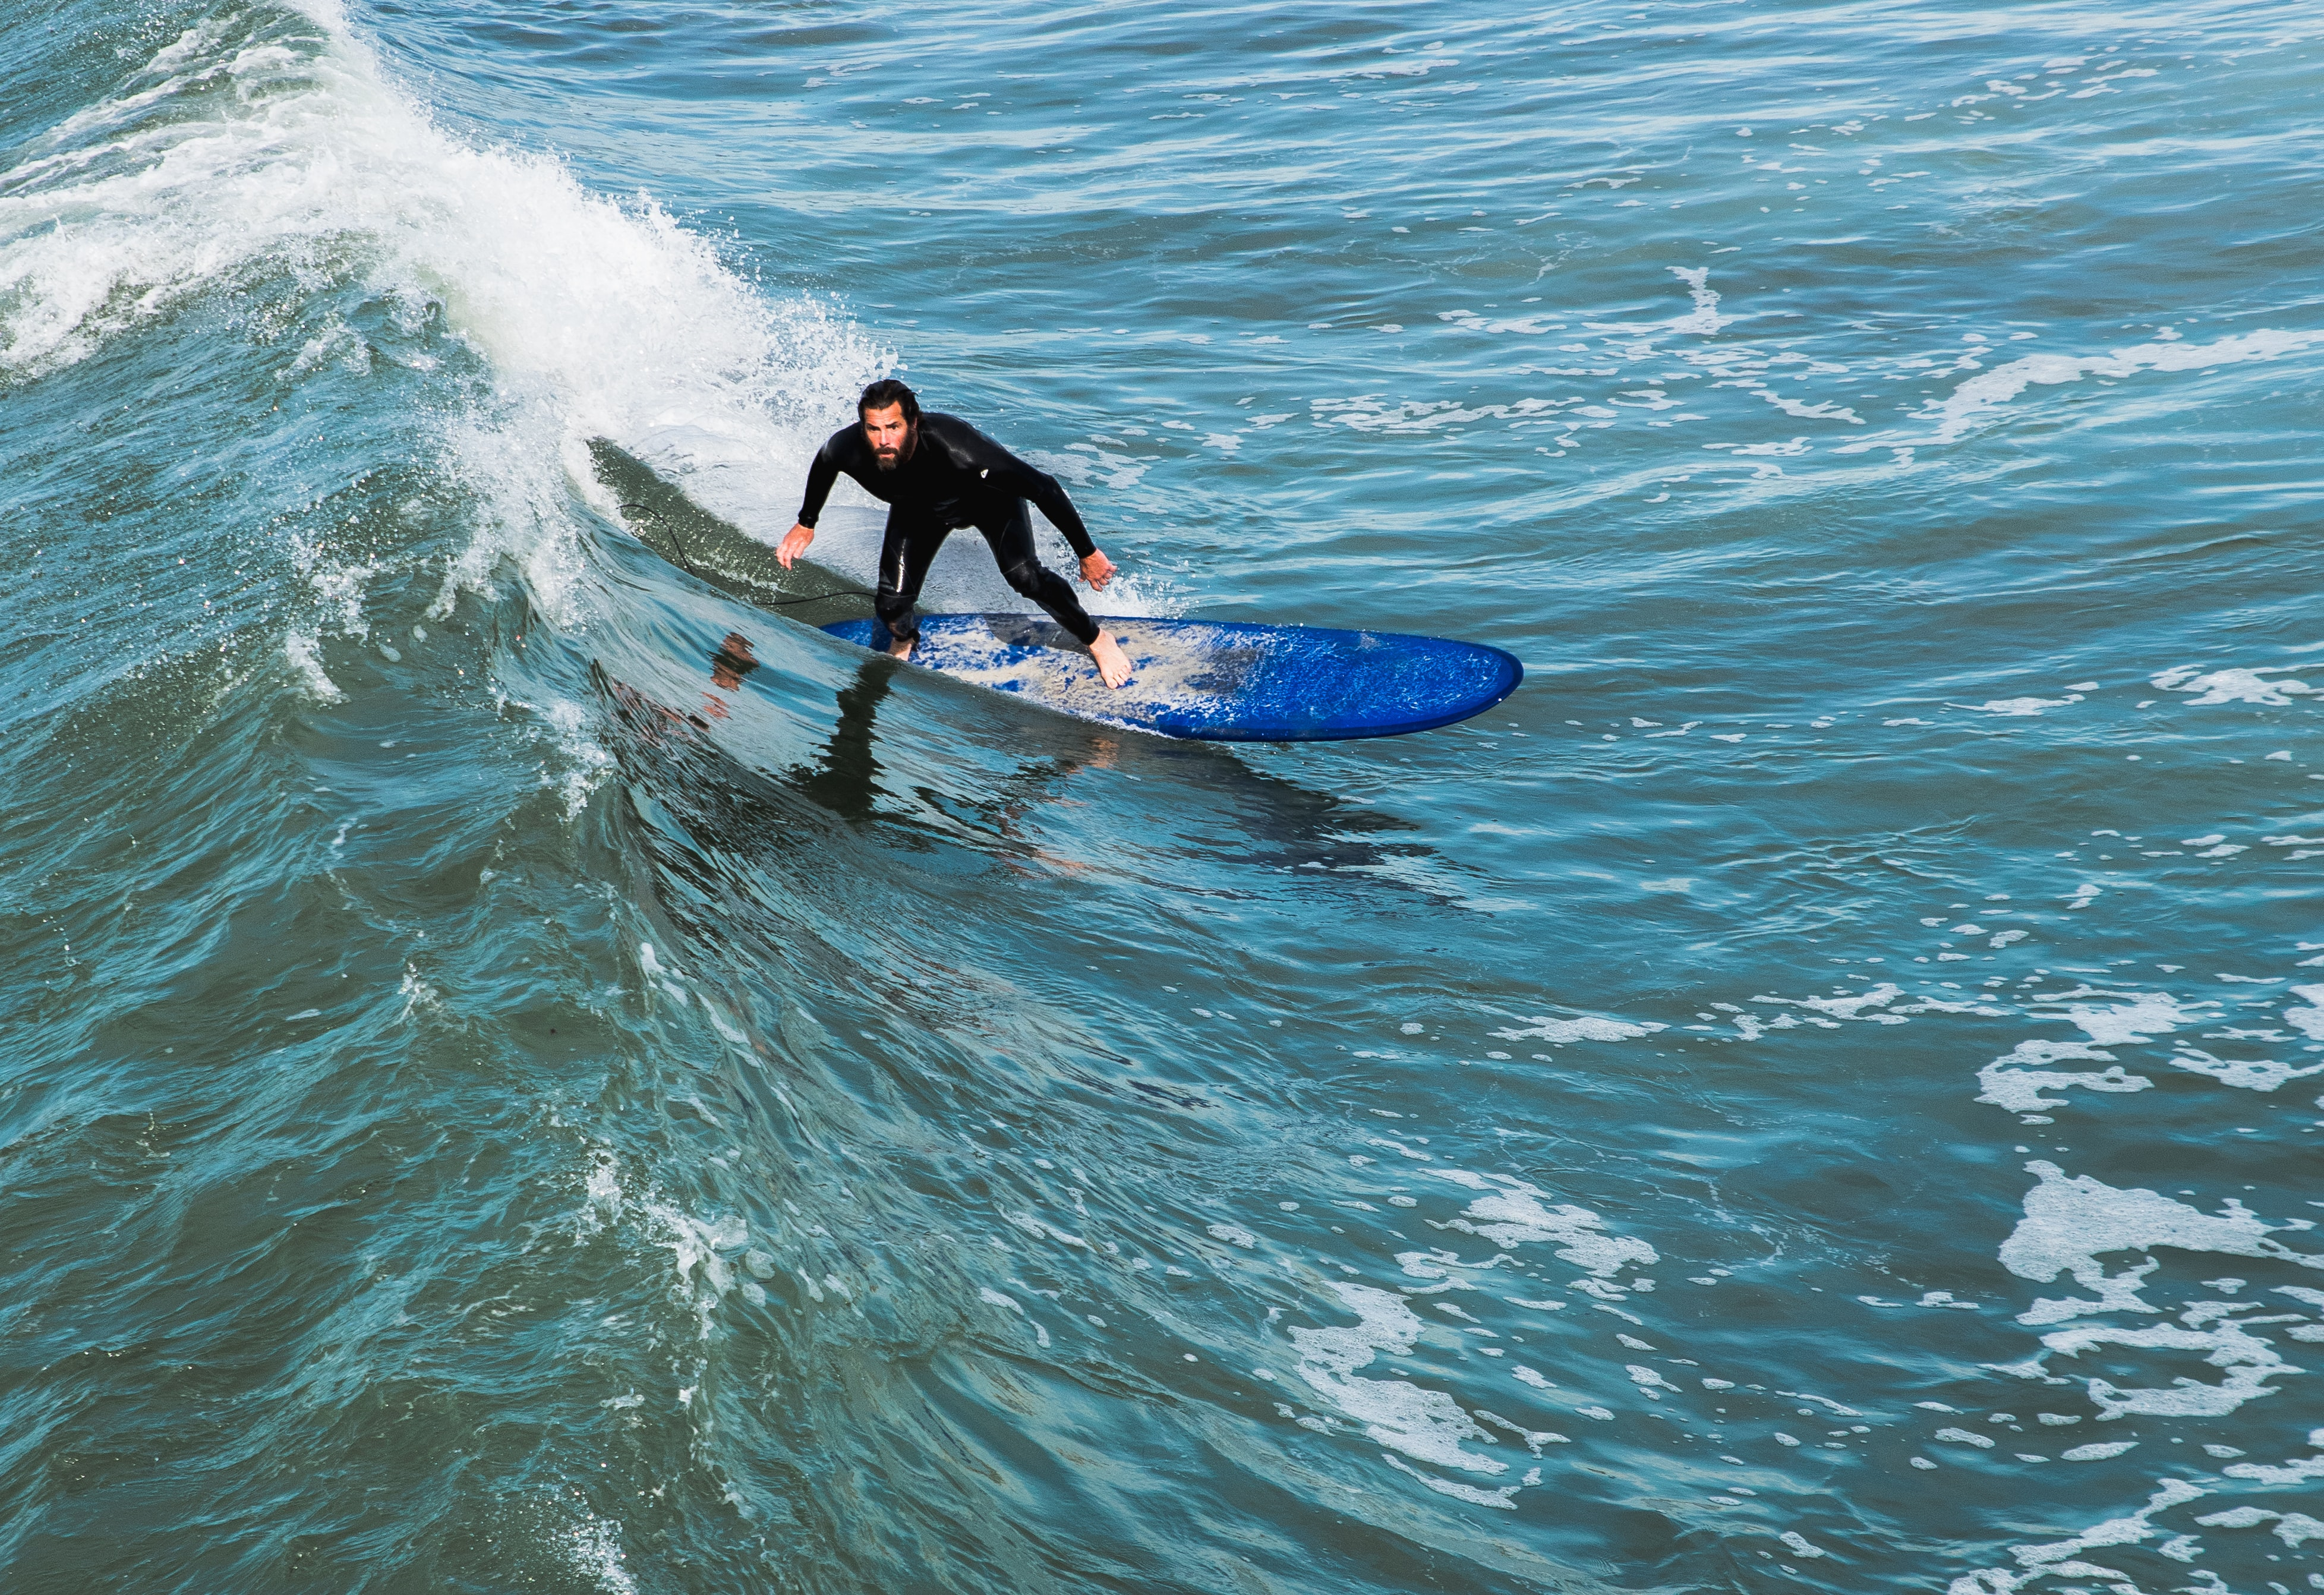 man in black wet suit surfing on wave during daytime